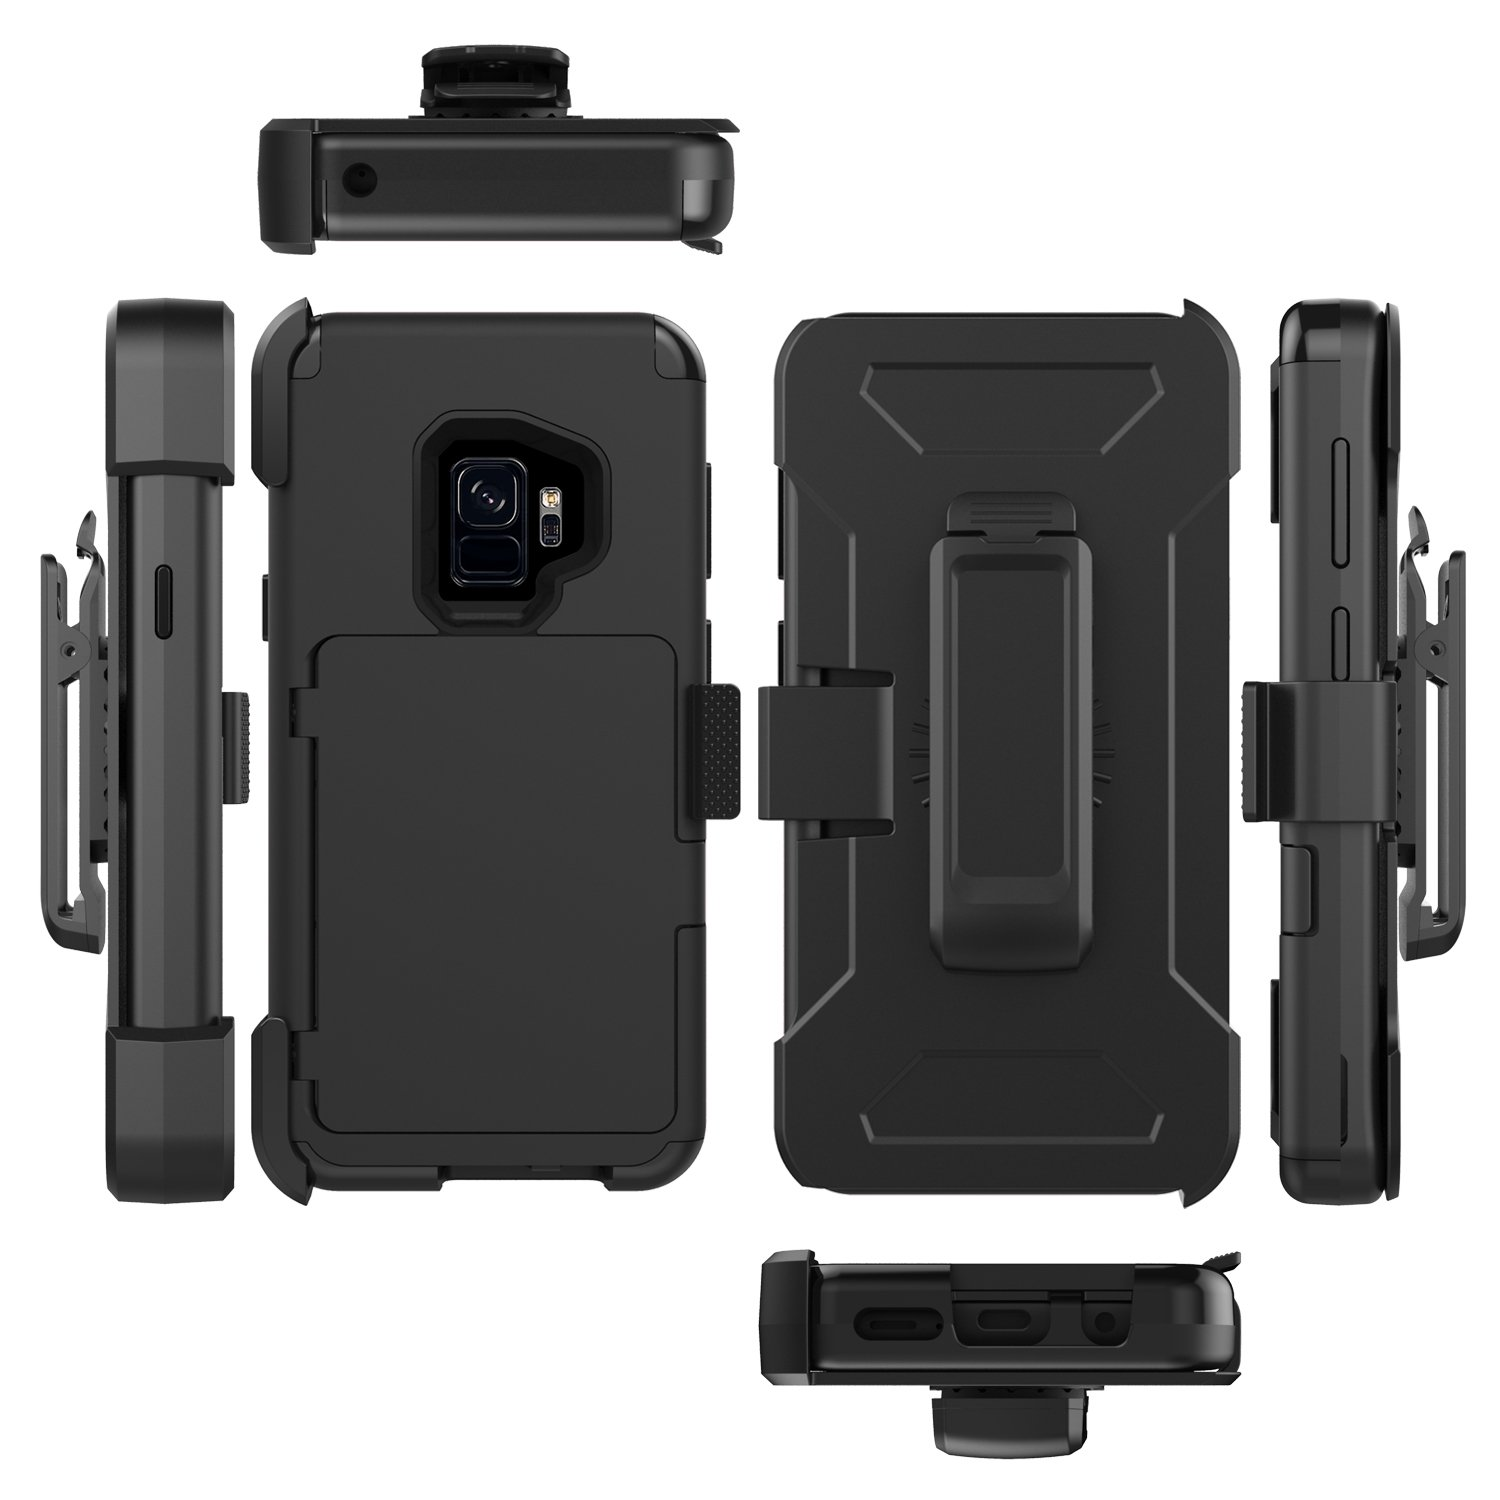 Galaxy S9 Belt Clip Case Xrpow Rugged Holster Wallet Iphone Xr Spigen Anti Shock With Card Slot Slim Armor Cs Casing Black Holder Stand Built In Mirror Heavy Duty Protection For